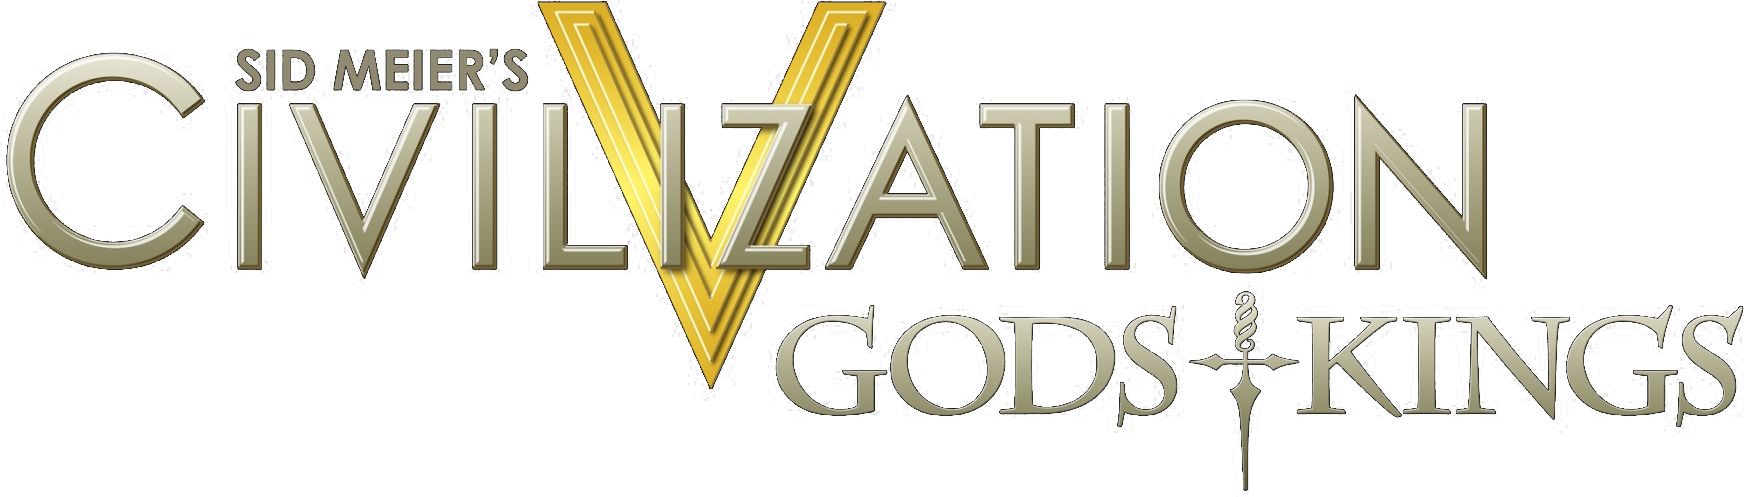 Civilization V Gods and Kings.png - Civilization HD PNG